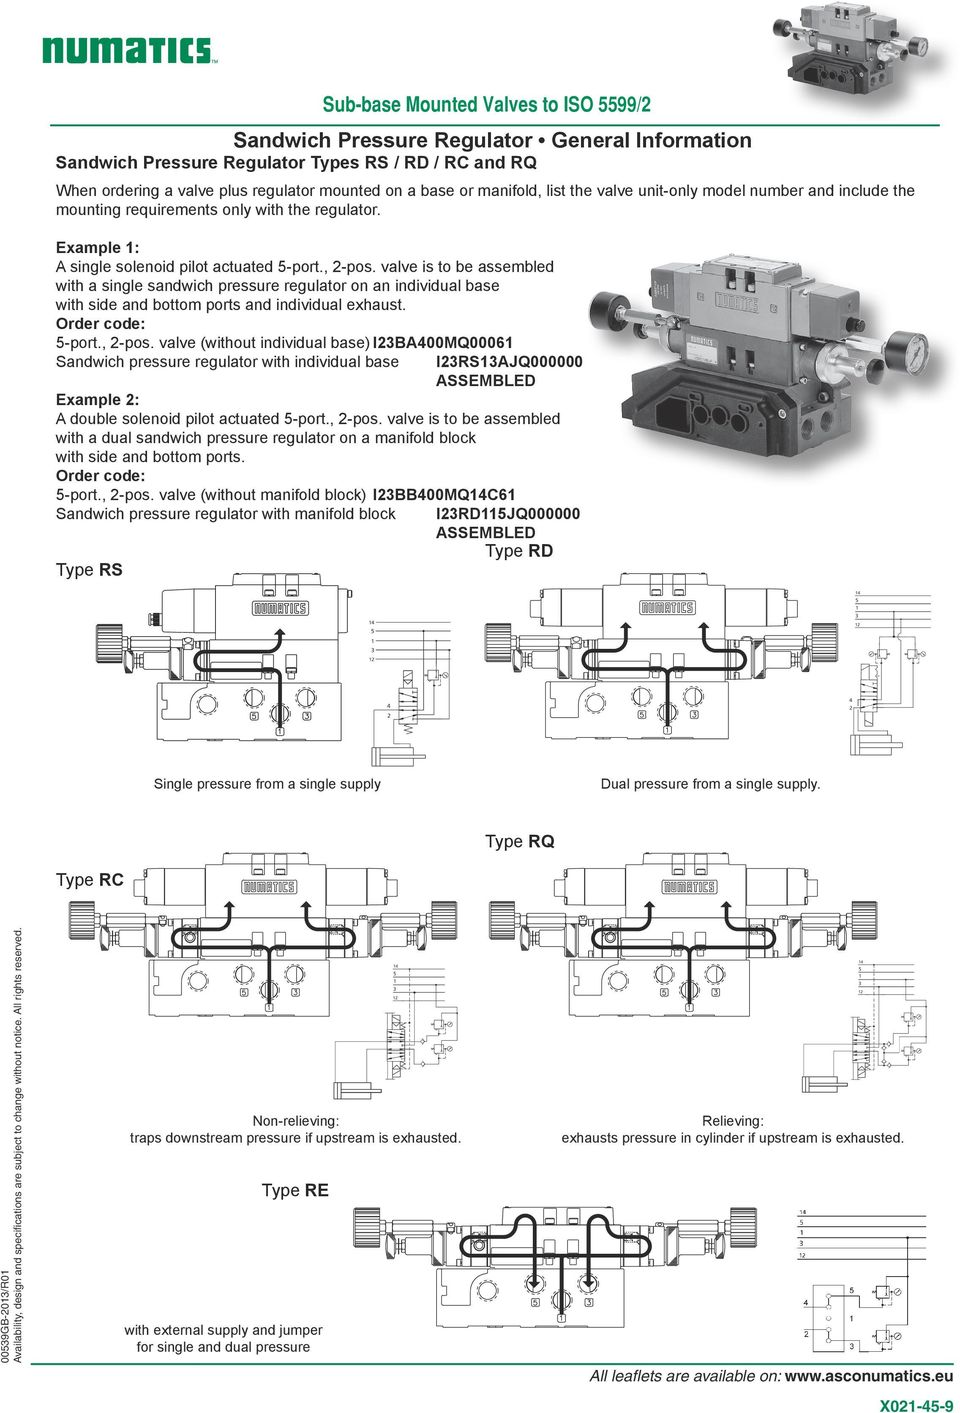 valve is to be assembled with a single sandwich pressure regulator on an individual base with side and bottom ports and individual exhaust. Order code: 5-port., 2-pos.